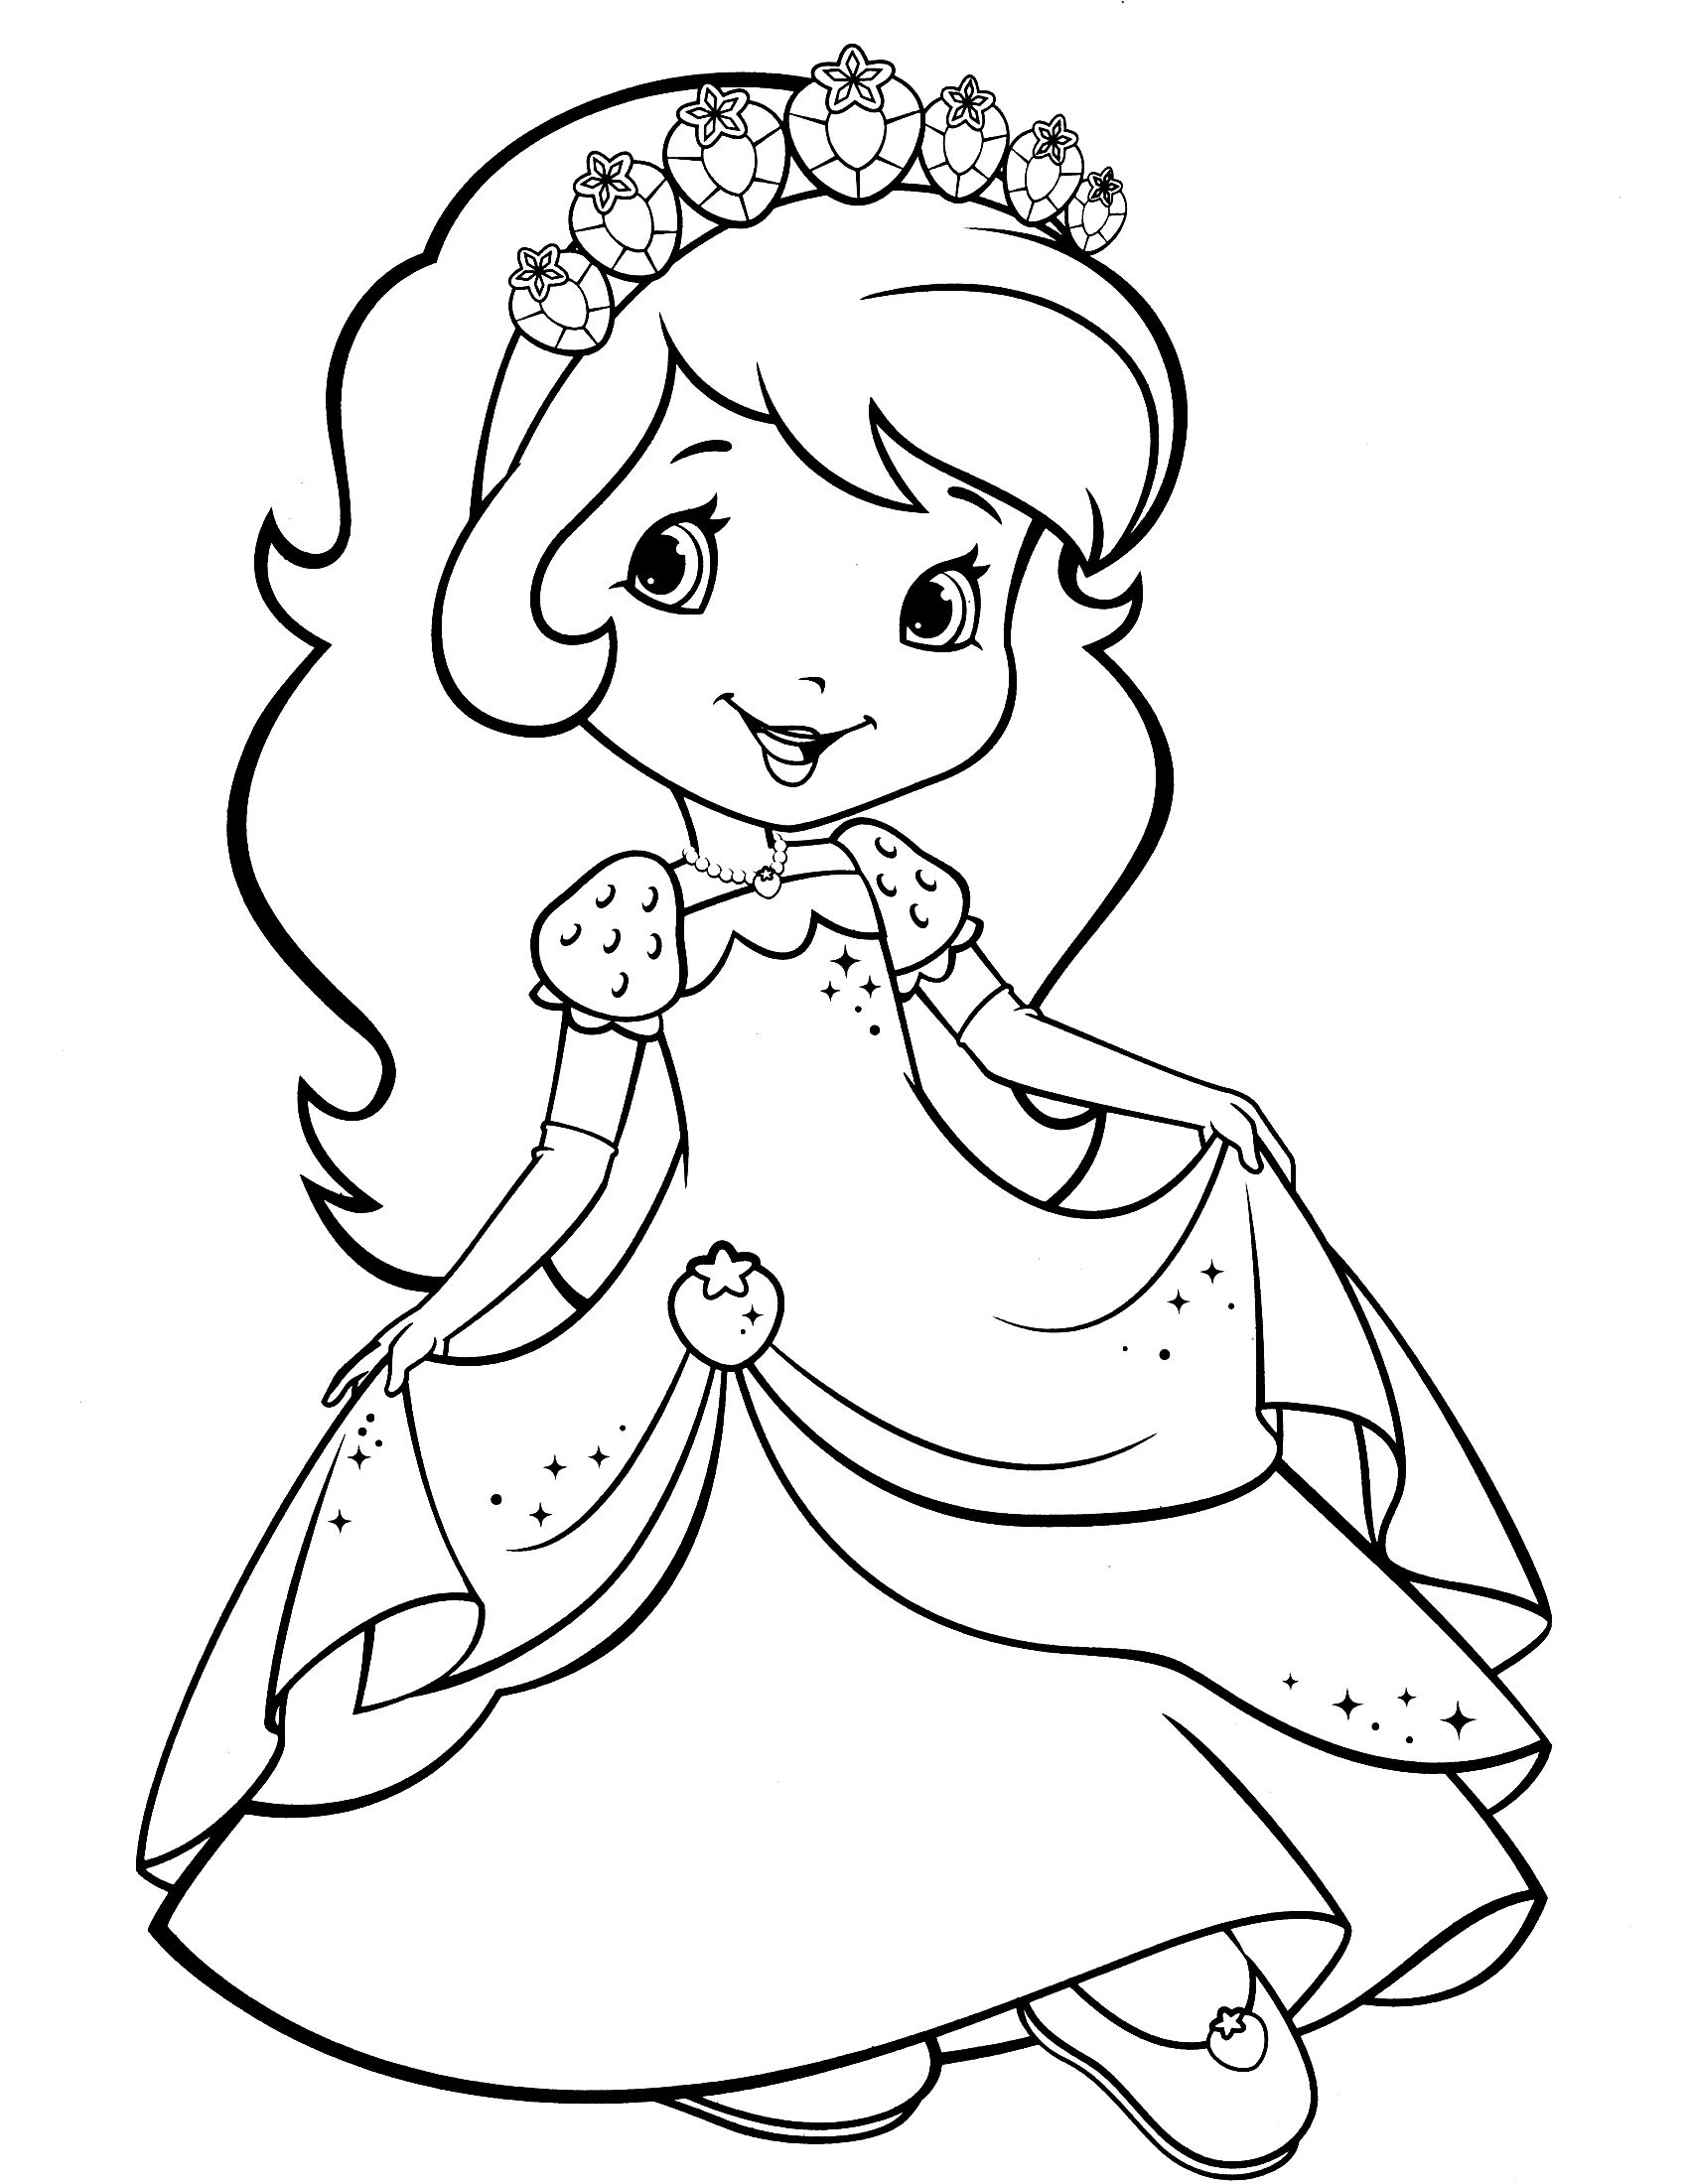 Strawberry Shortcake Coloring Page | Strawberry Shortcake Coloring - Strawberry Shortcake Coloring Pages Free Printable